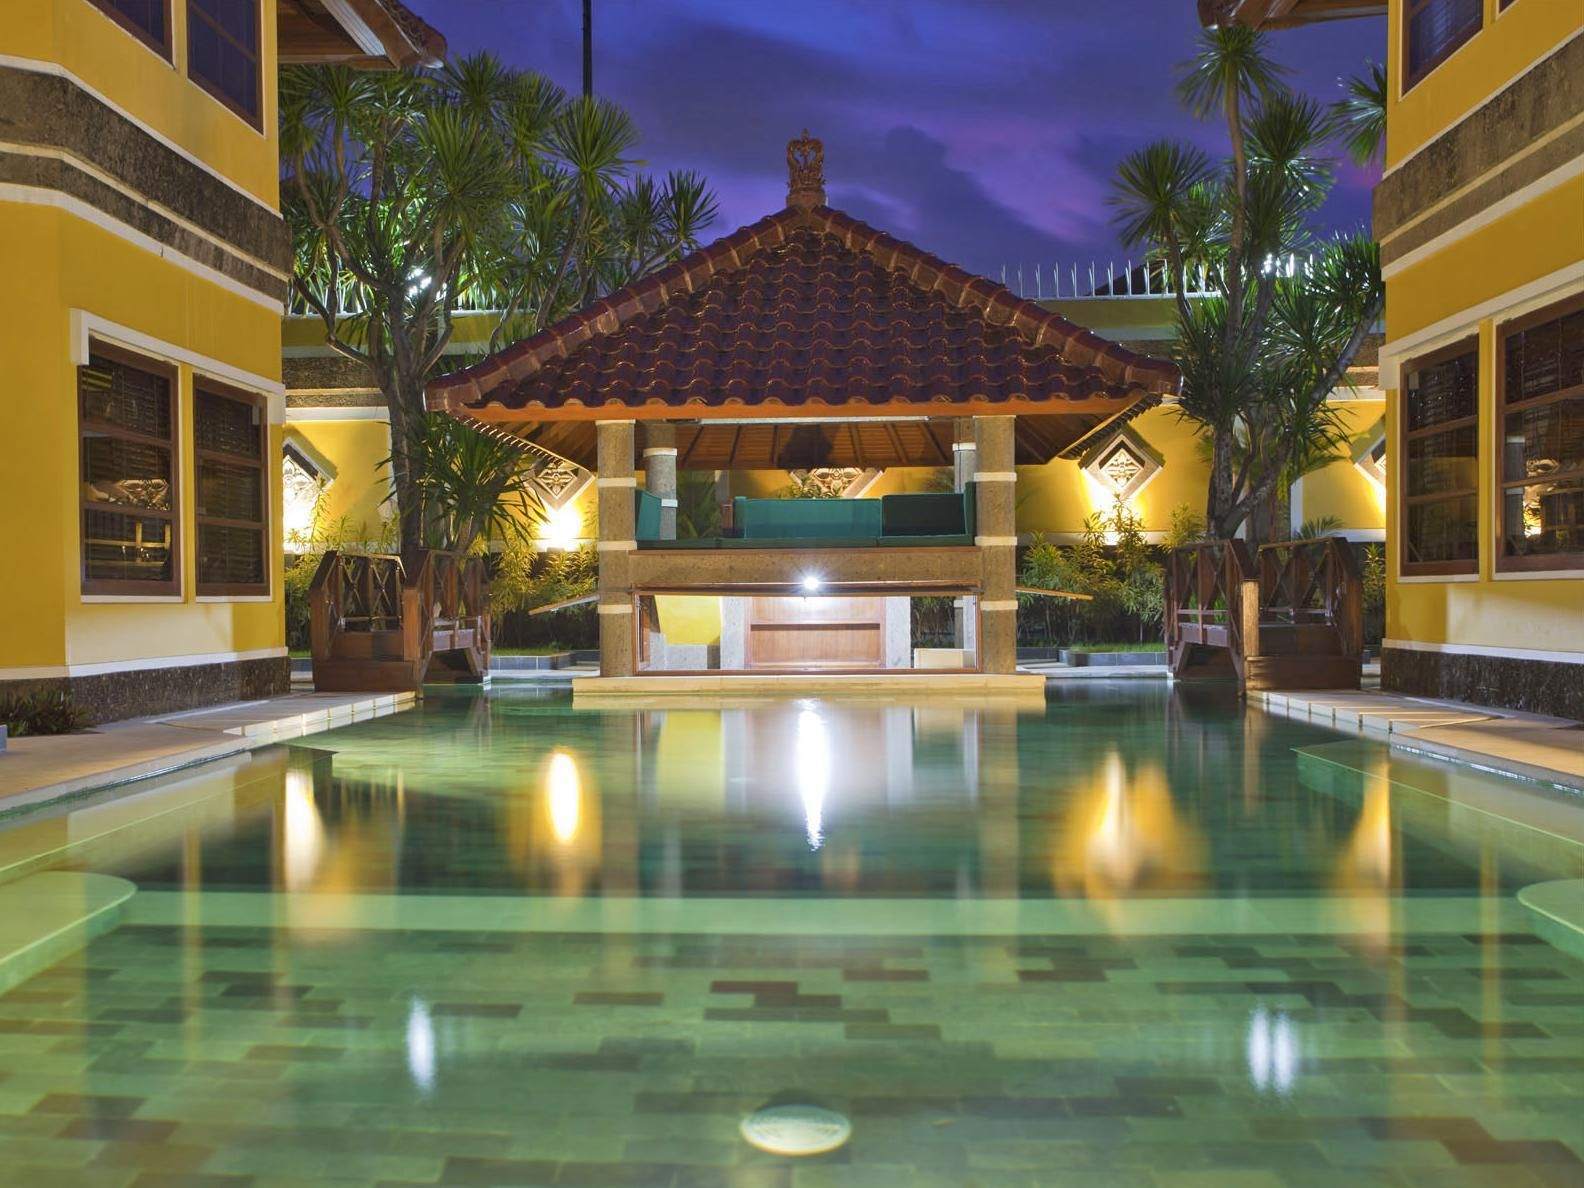 Bali Apel Villa Sanur Indonesia Asia The 2 Star Apel Villa Sanur Offers Comfort And Convenience Whether You Re On Business Or Holiday In Bali Deals Villa Bali